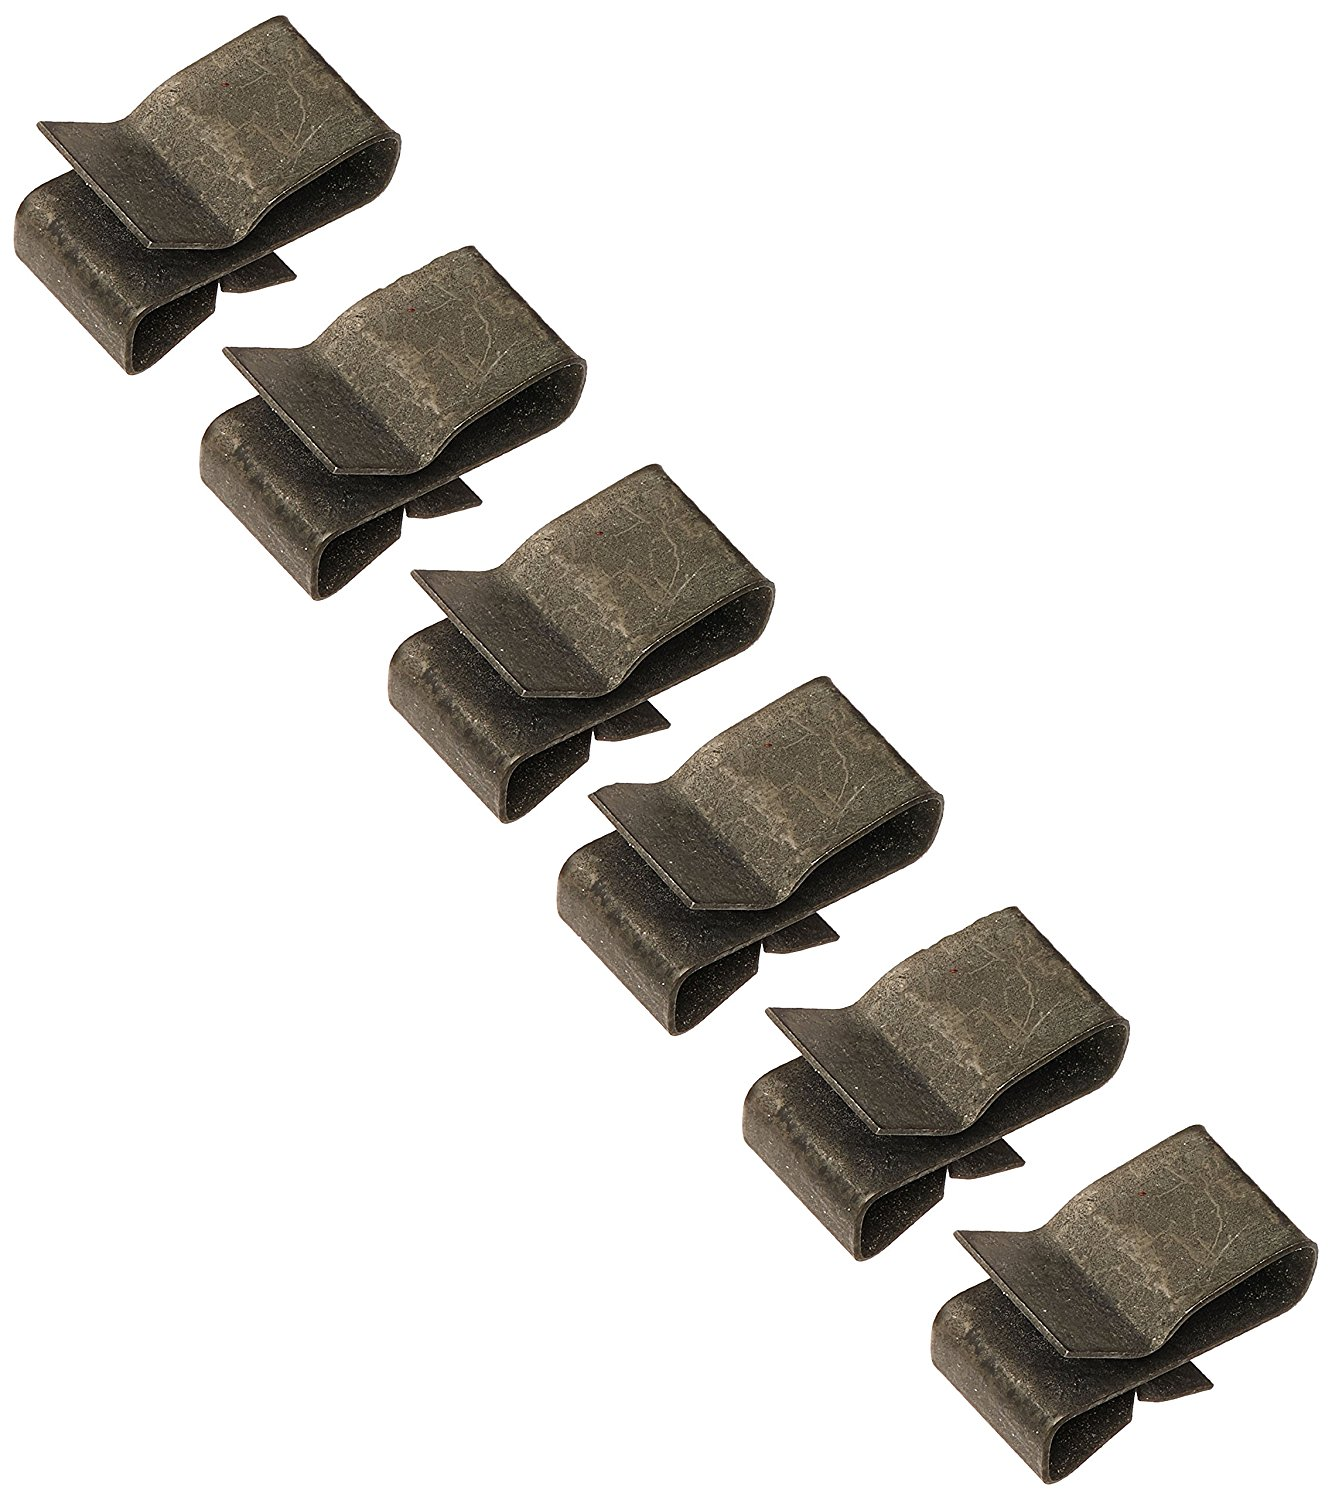 hight resolution of 99460 5 trailer wiring frame clip grote 99460 5 fram clip 10 pack by grote walmart com